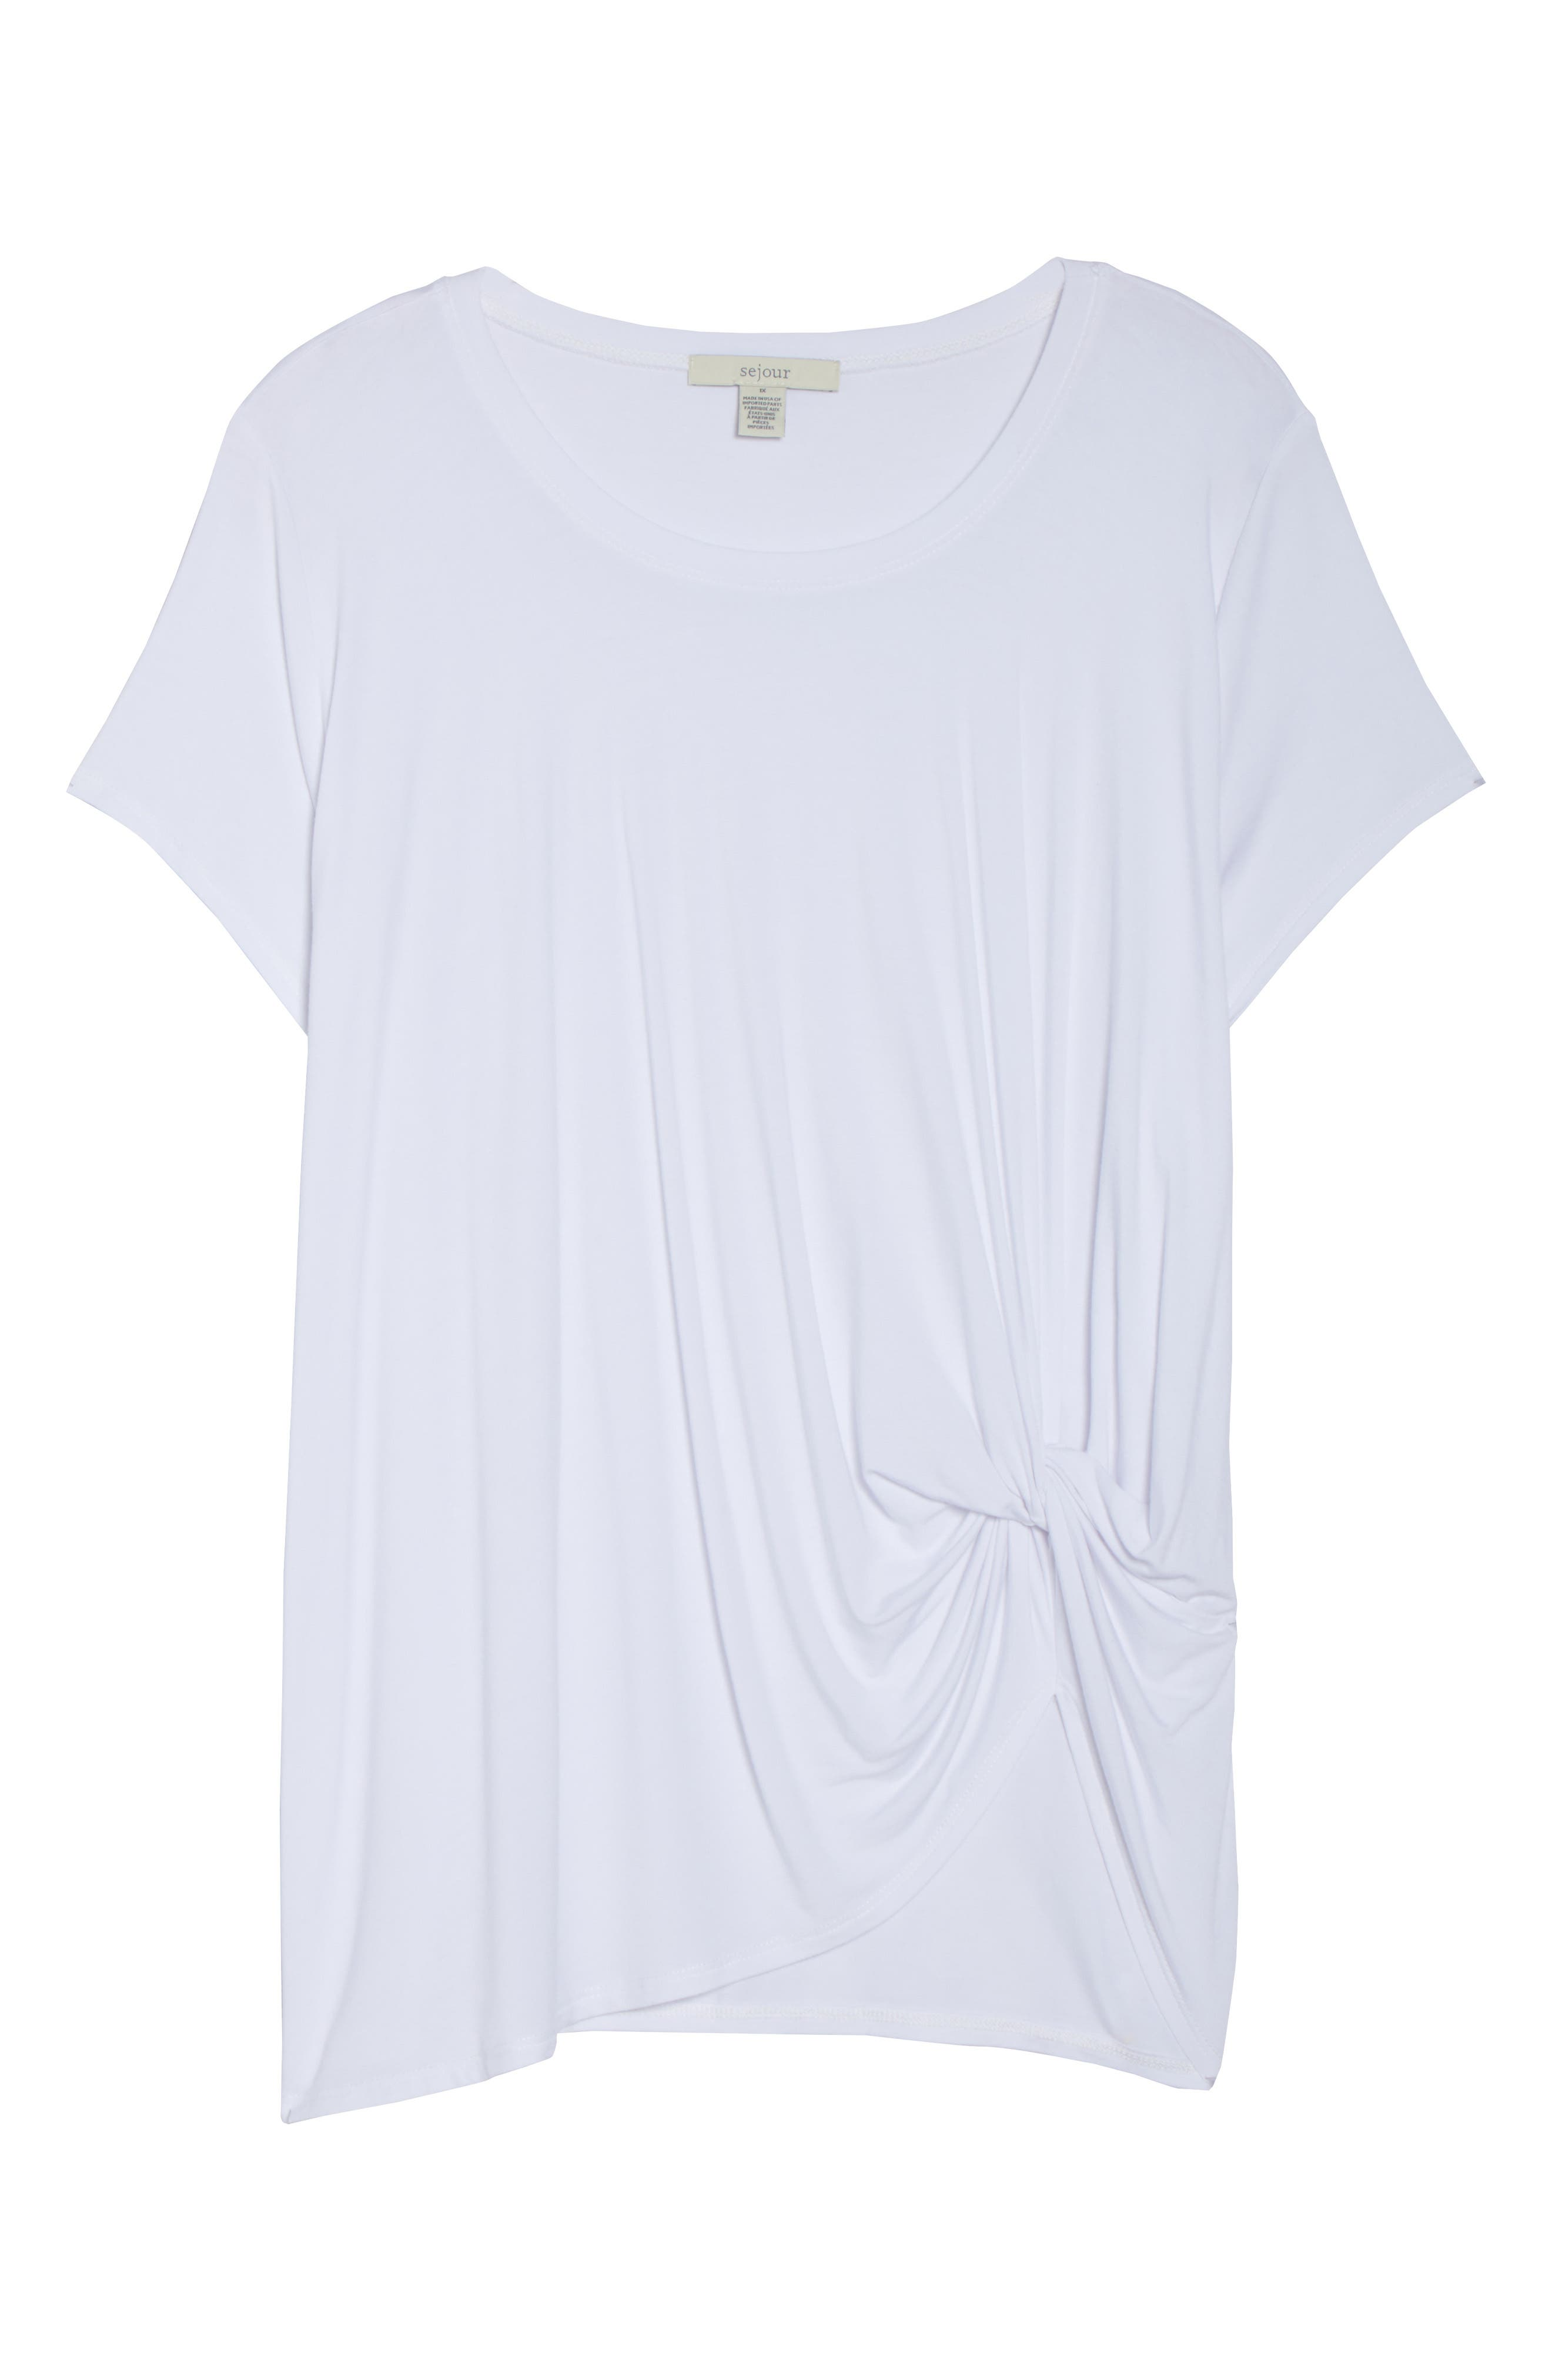 Cinch Tee,                             Alternate thumbnail 6, color,                             White